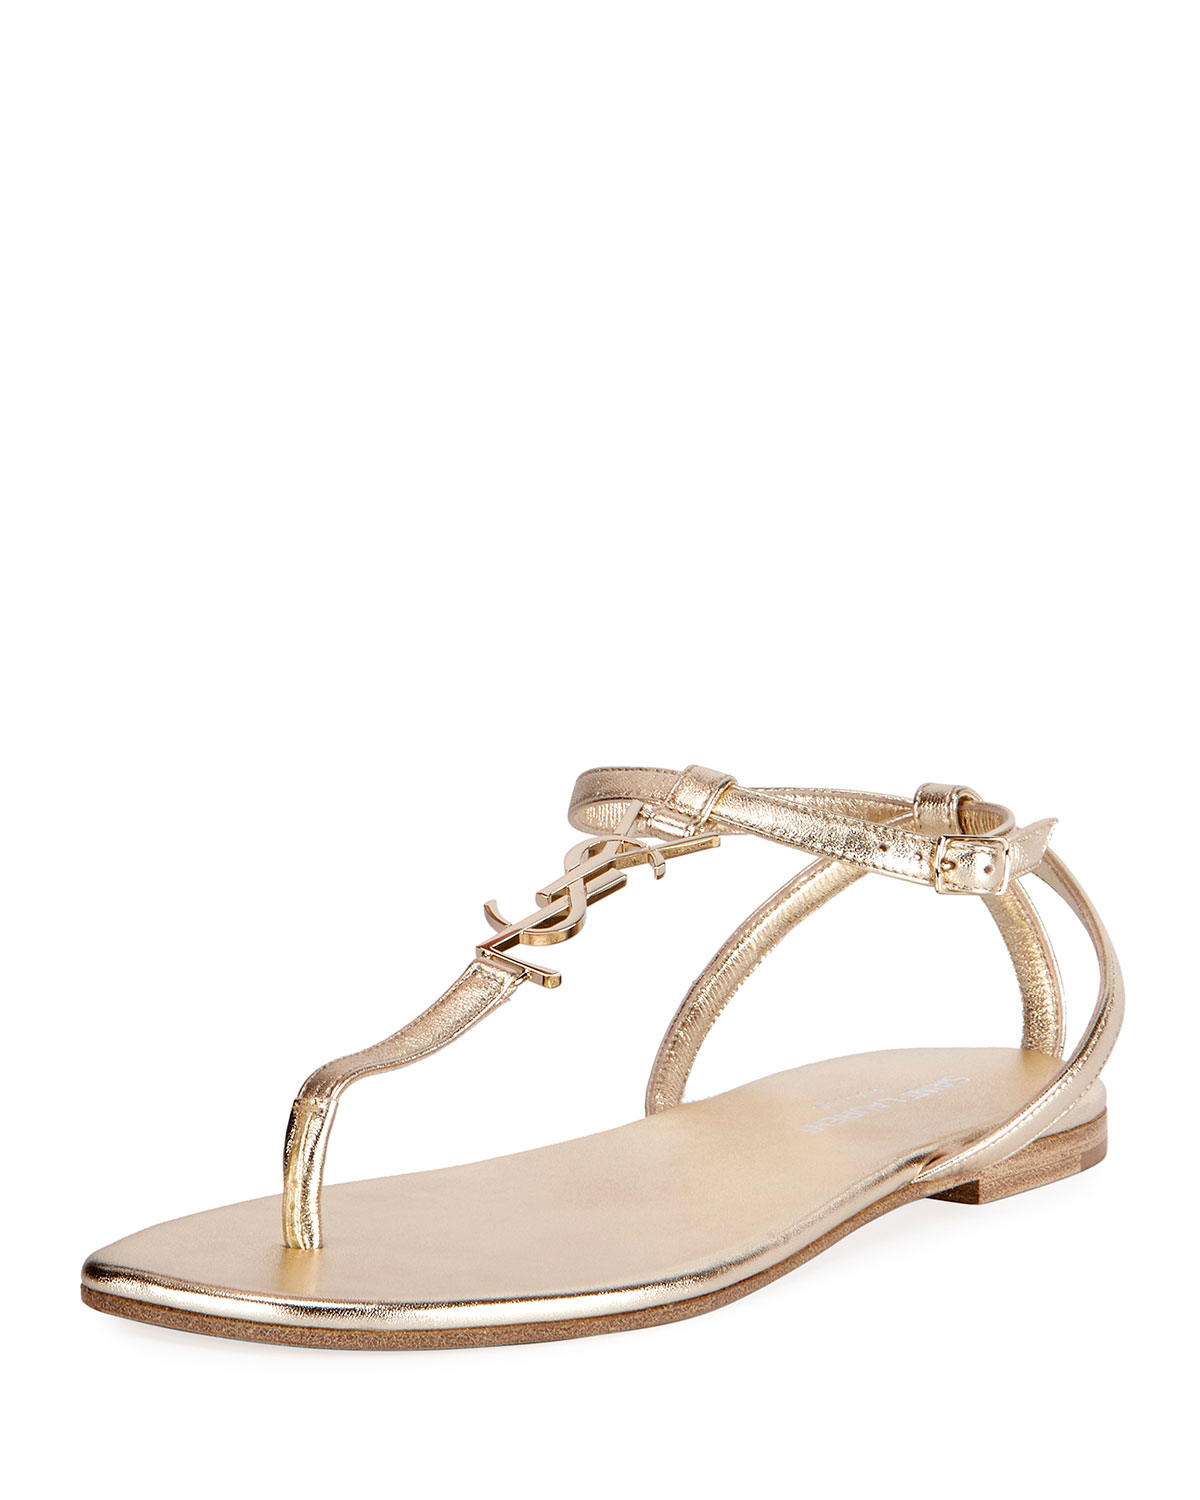 d96a6d1e7e3d Saint Laurent Monogram Metallic Flat Thong Sandal